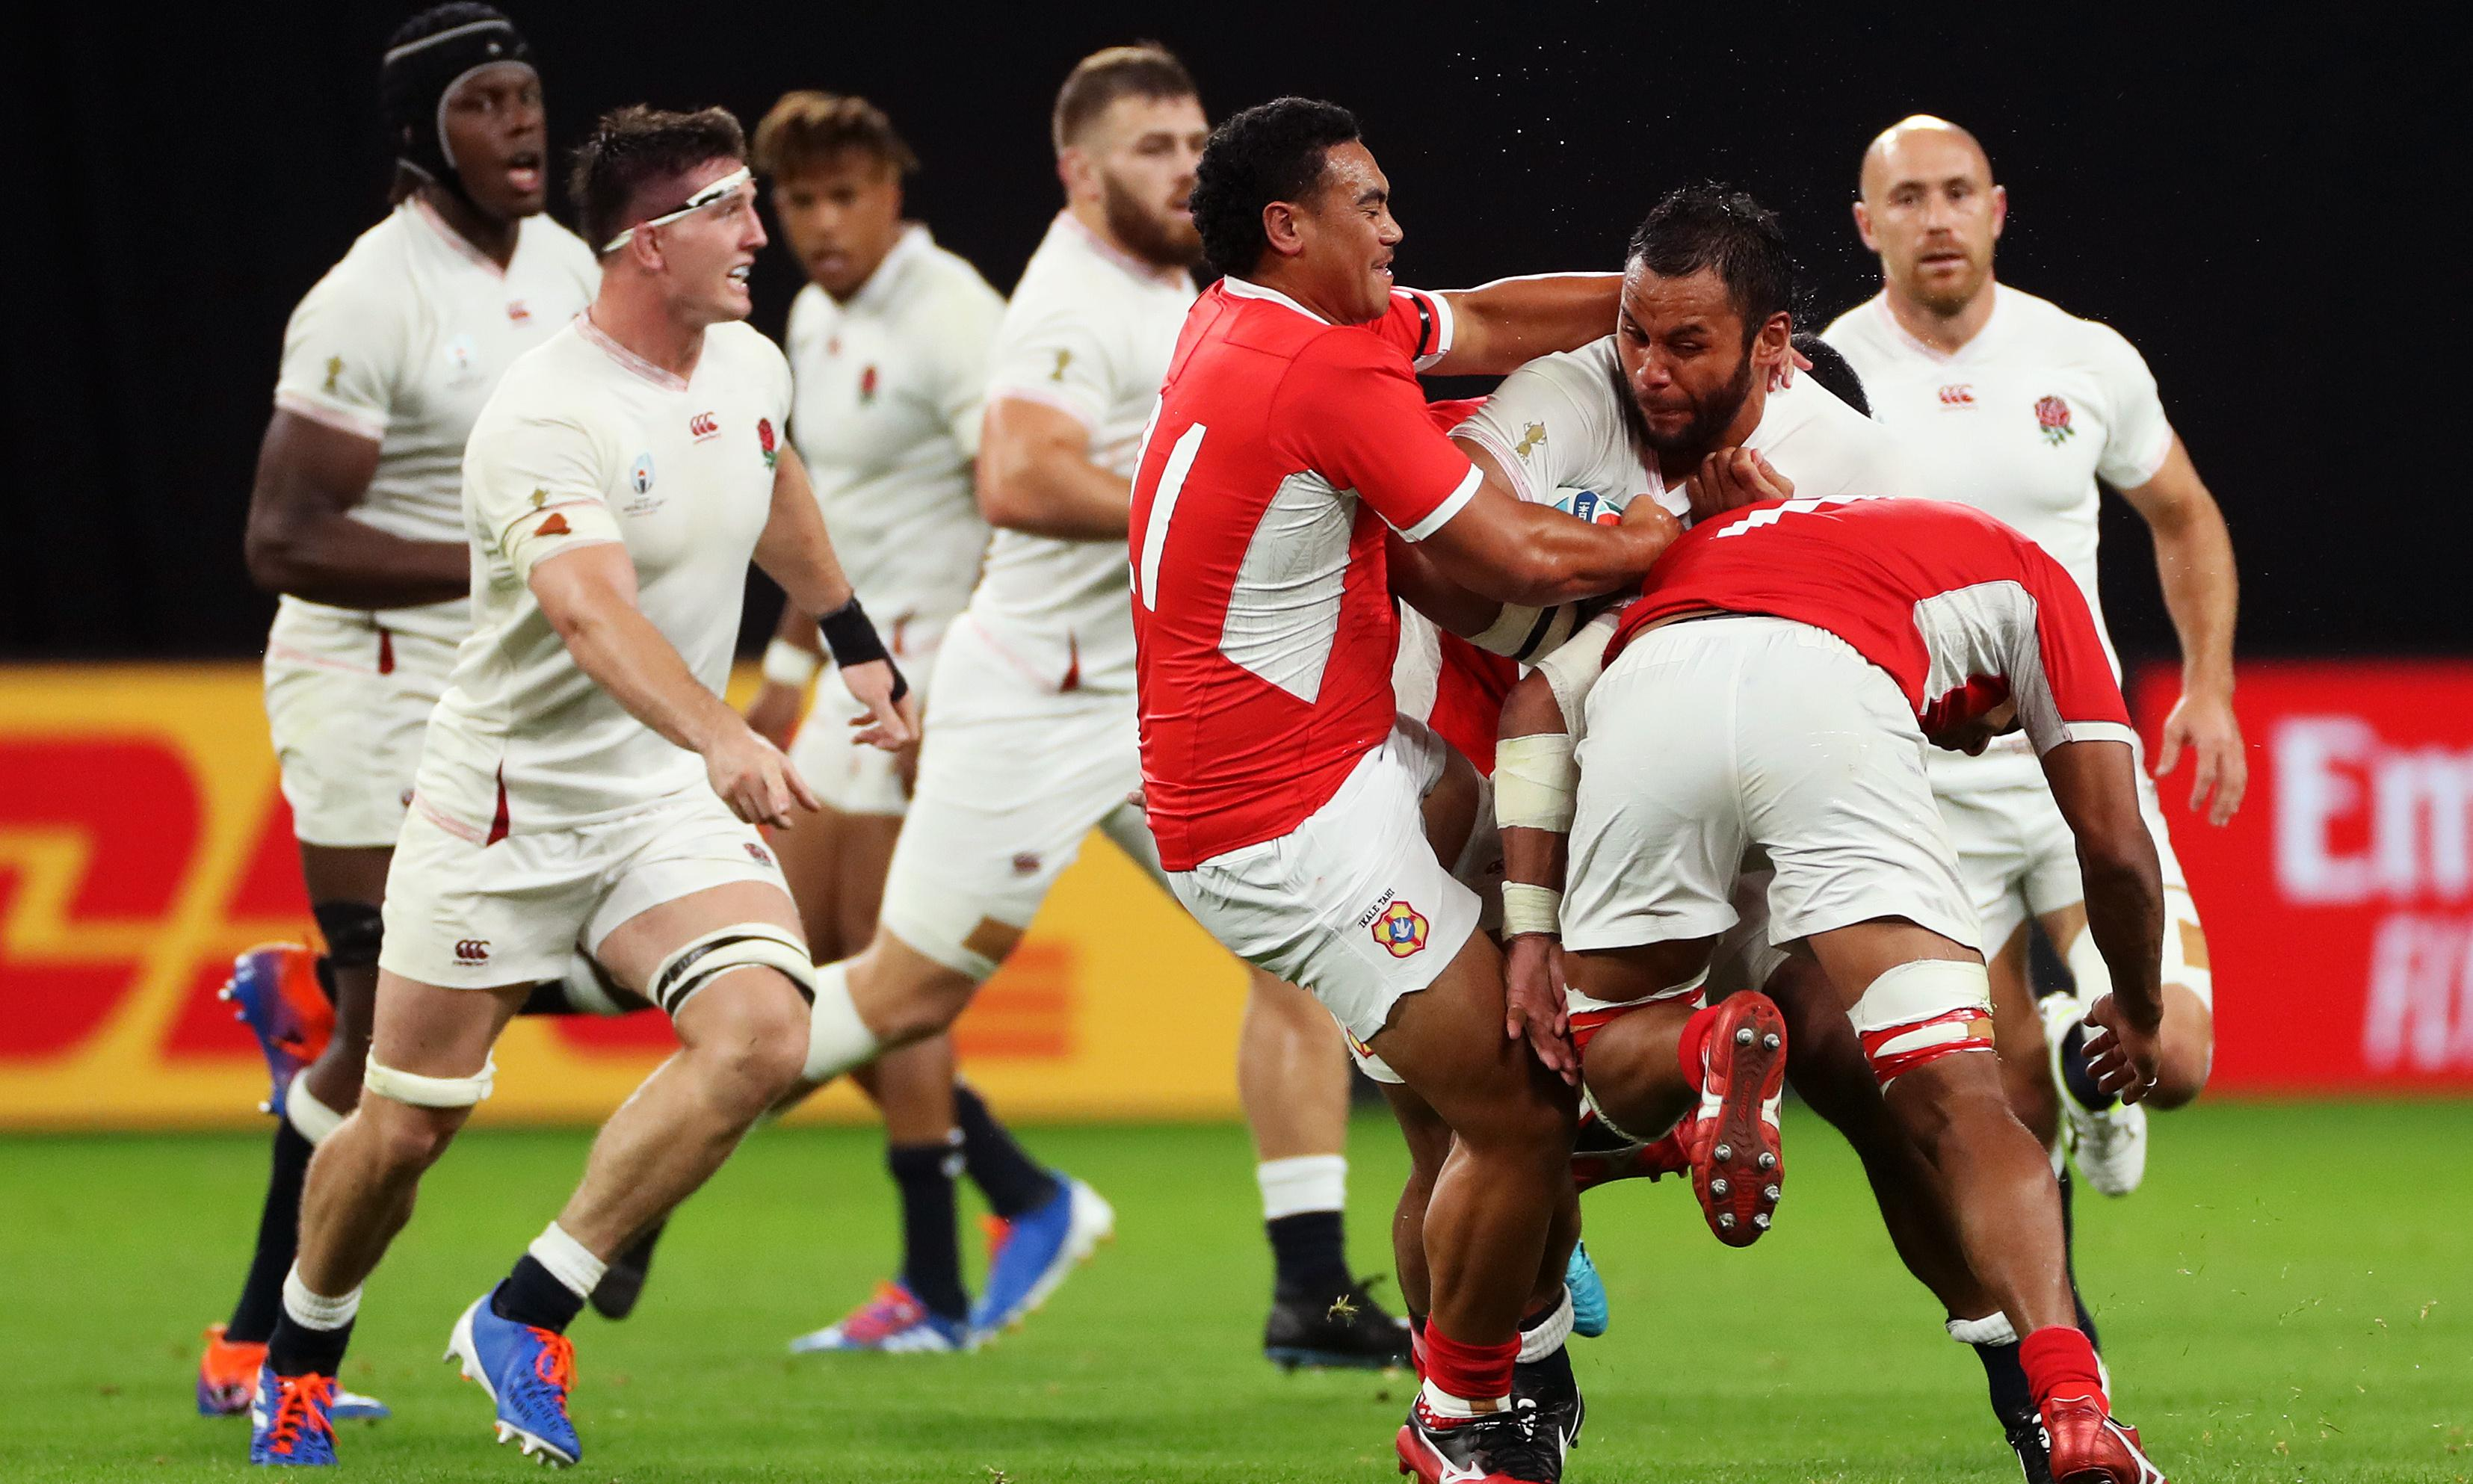 England 35-3 Tonga: five talking points from England's World Cup opener